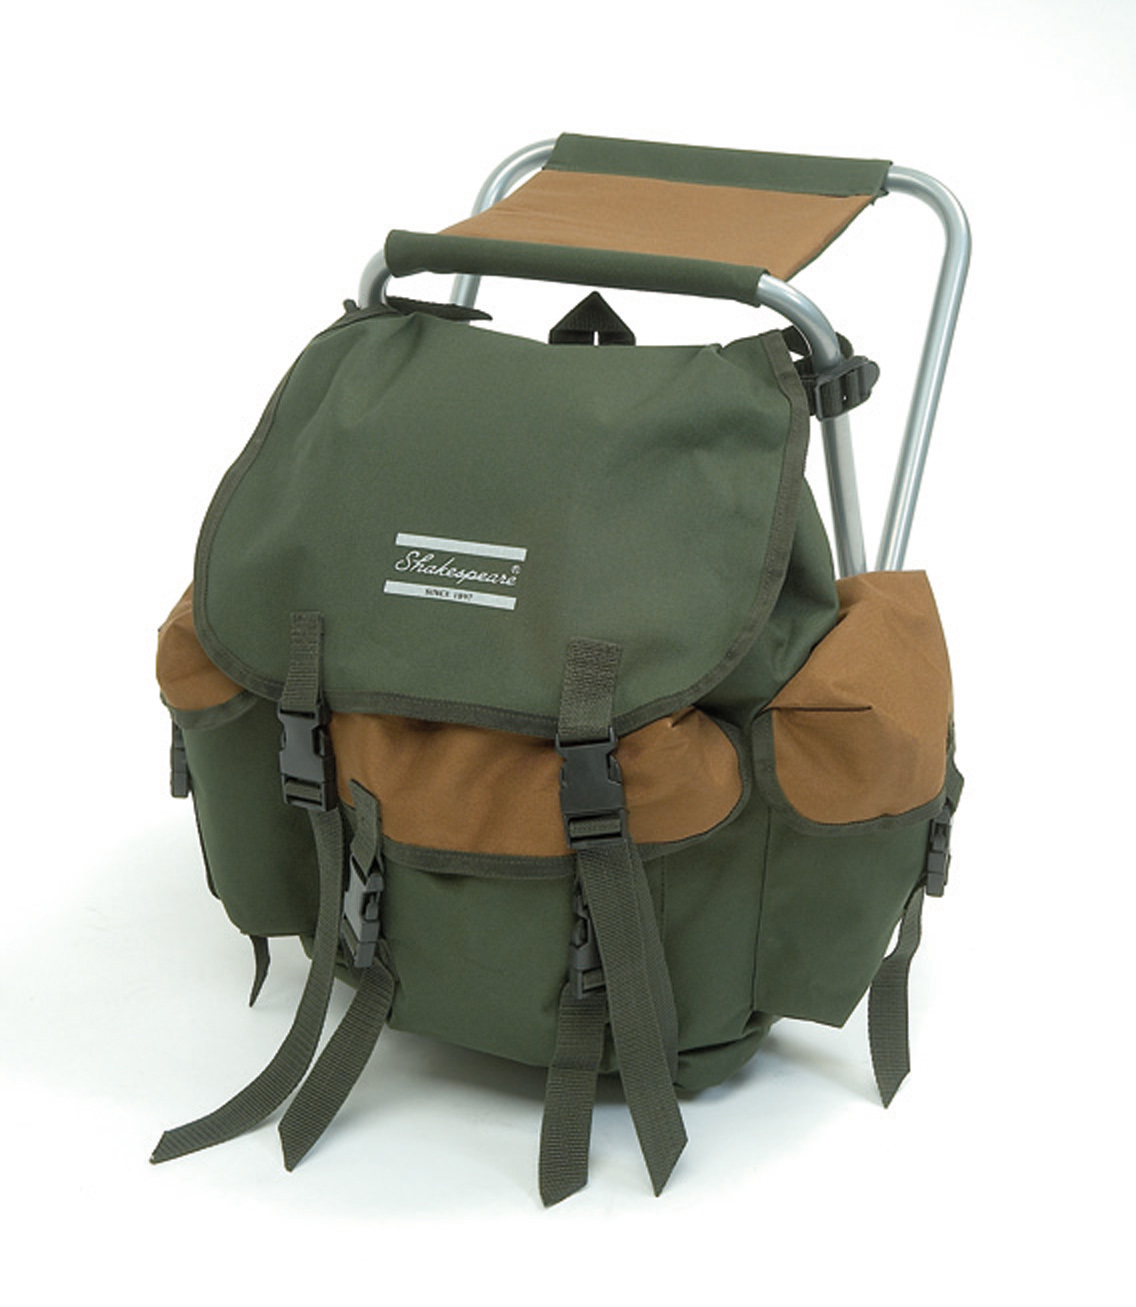 Shakespeare Stool With Back Pack Glasgow Angling Centre